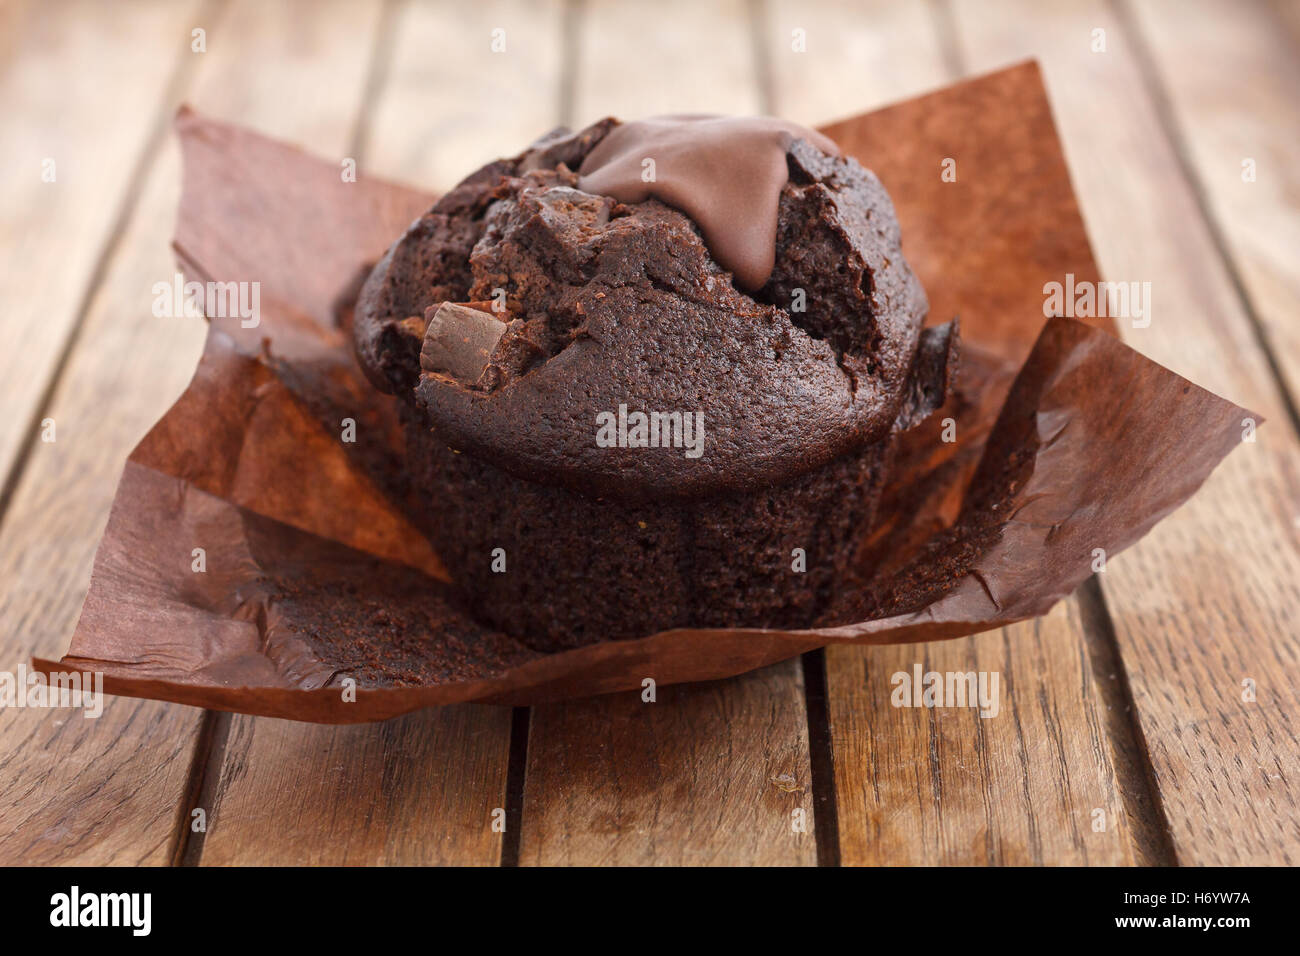 Chocolate chip muffin in brown wax paper. Unwrapped. Stock Photo